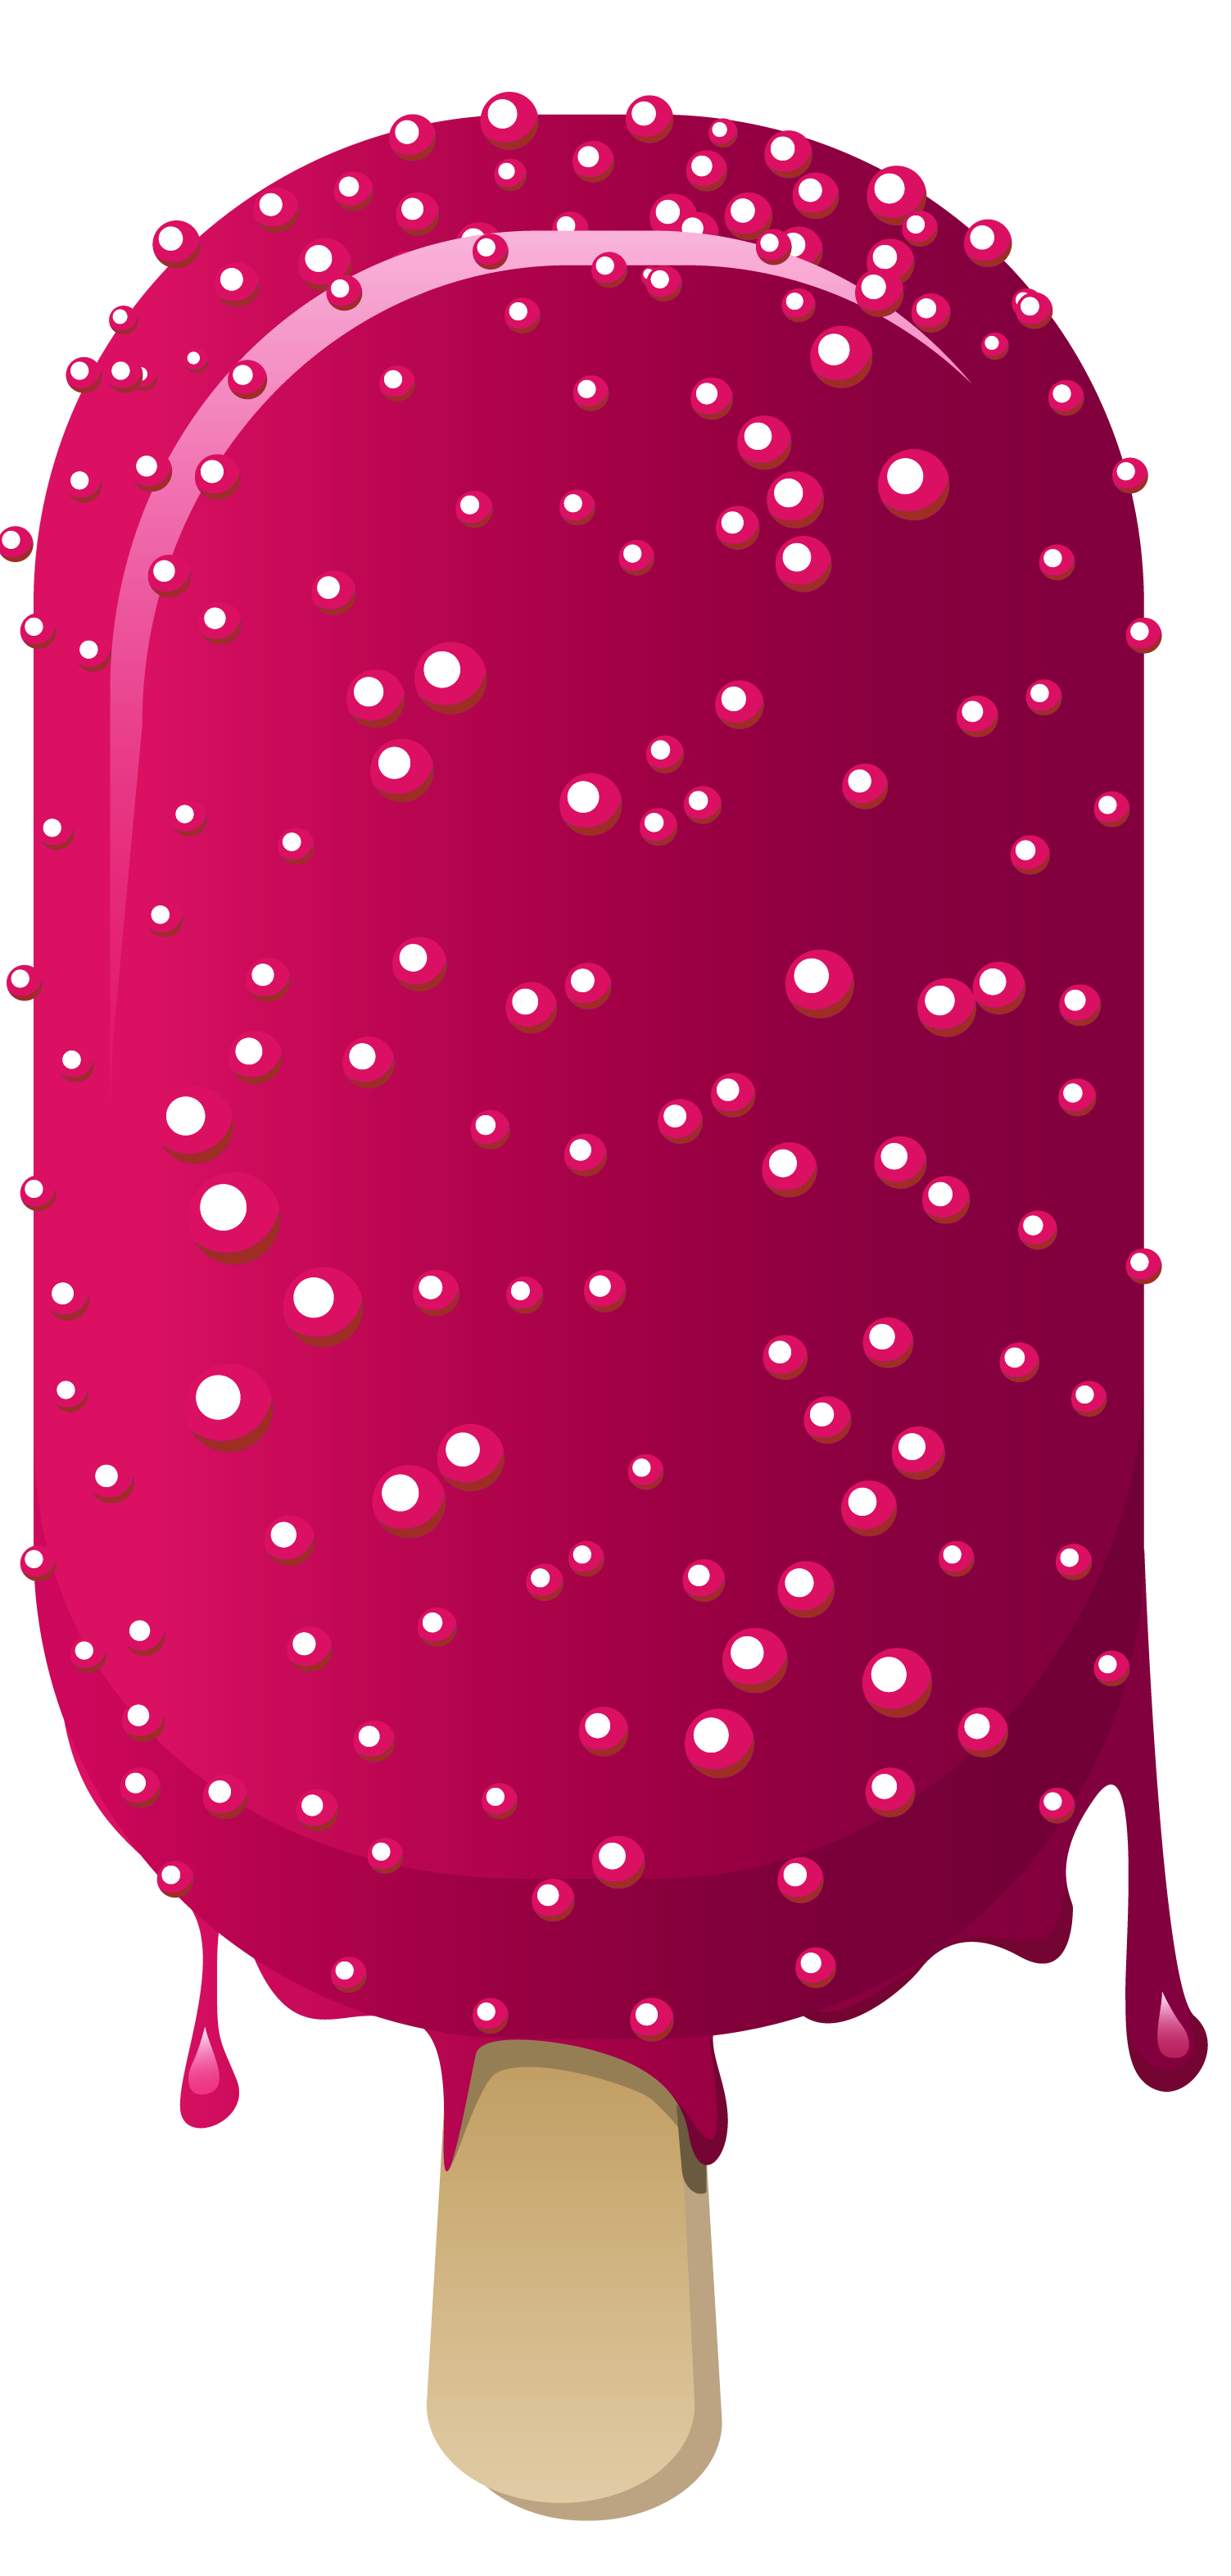 Cream stick png picture. Ice clipart printable